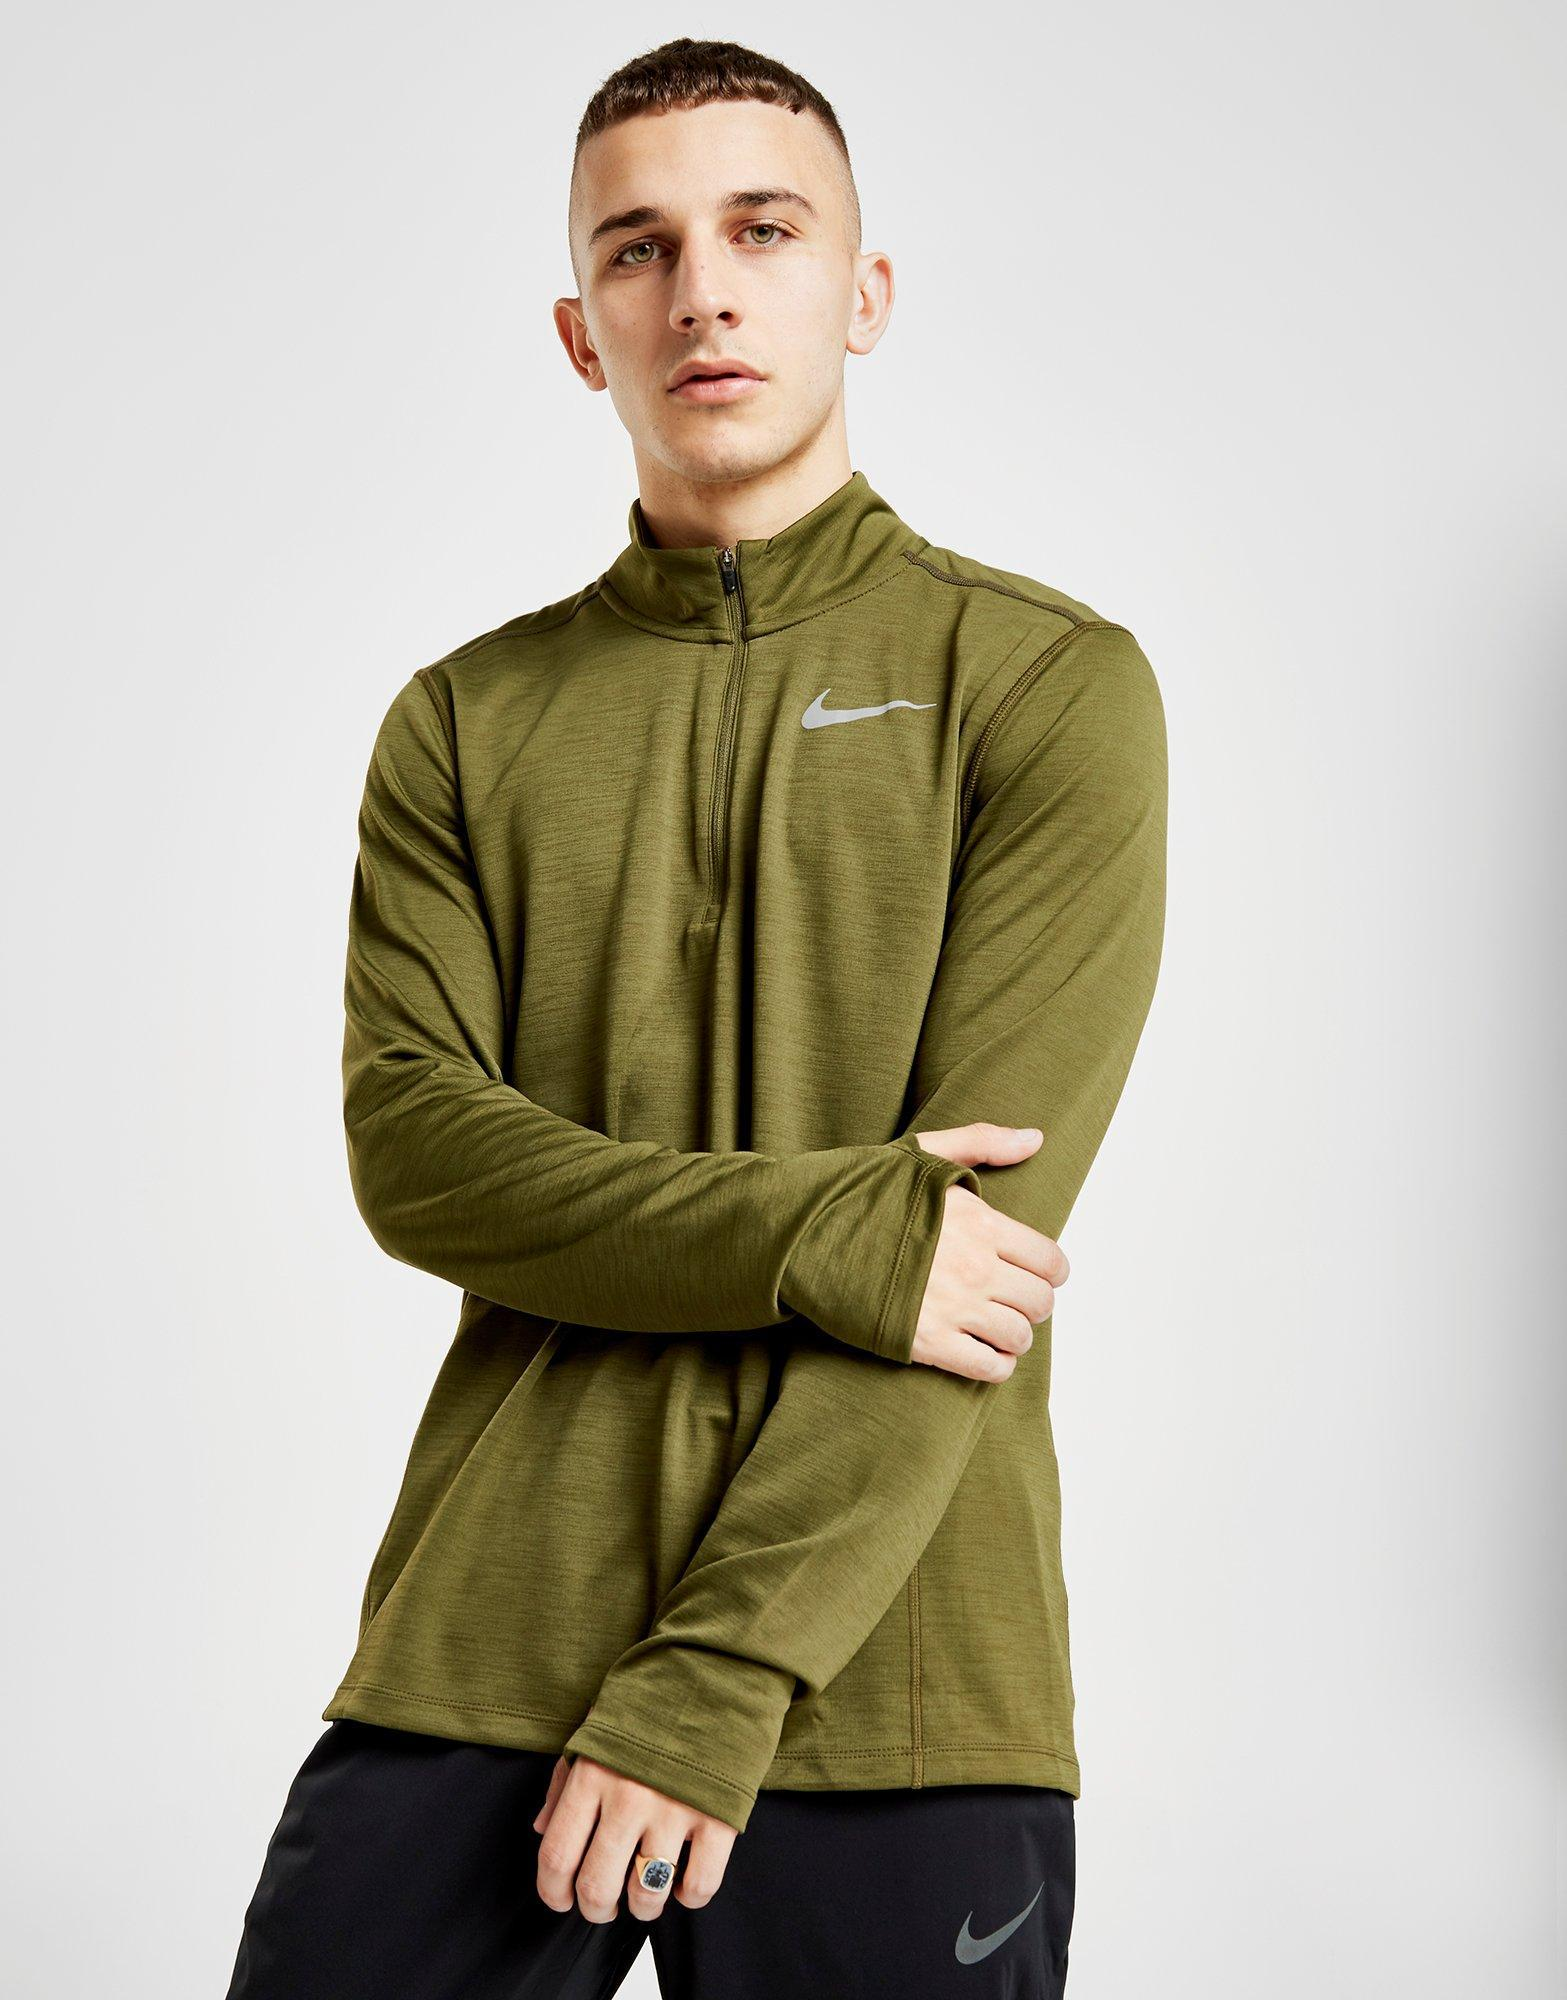 075022ecf053 Lyst - Nike Pacer 1 2 Zip Track Top in Green for Men